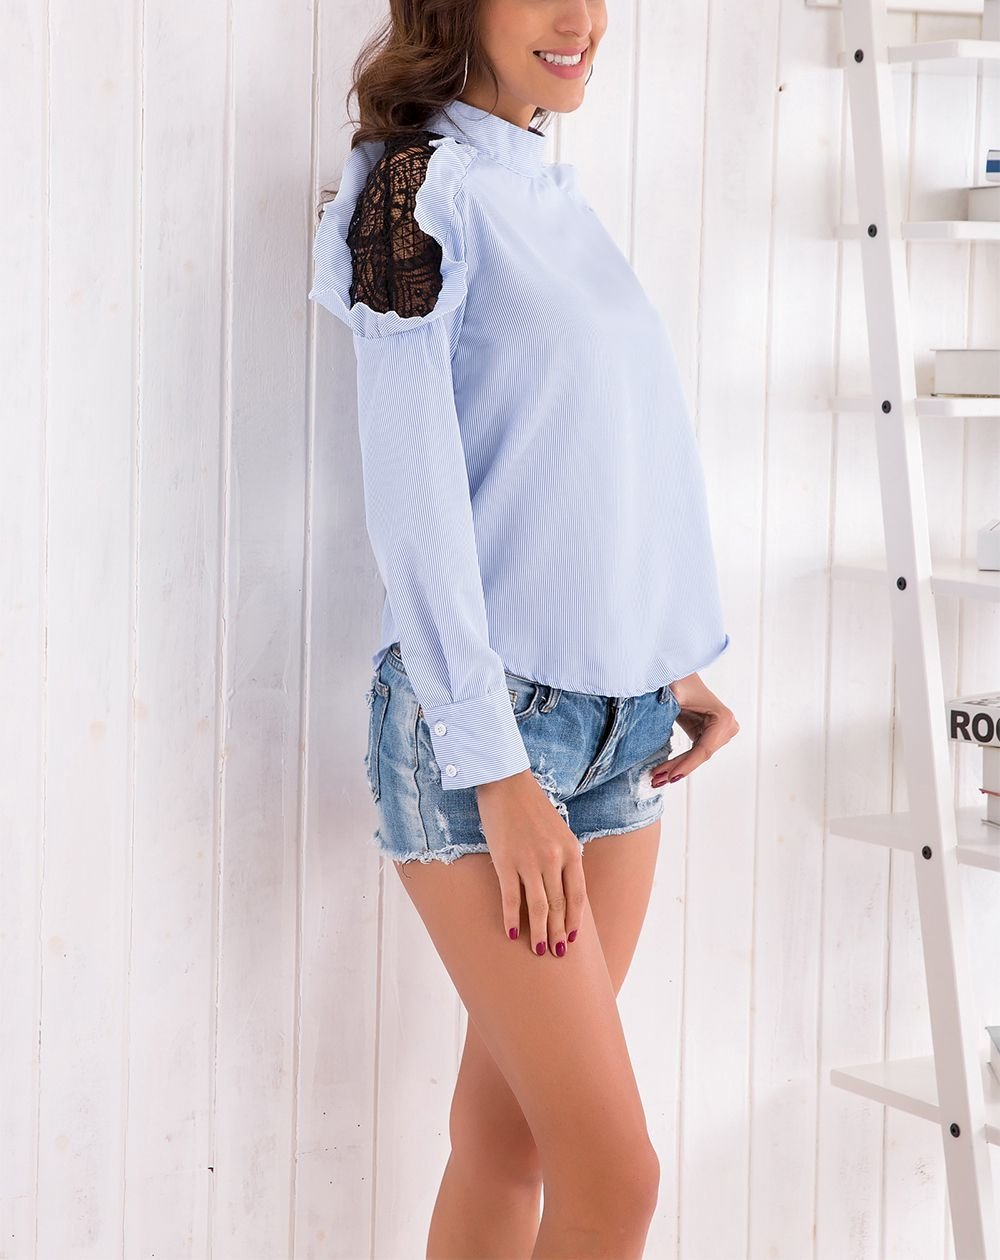 Top with Lace Shoulder Accents